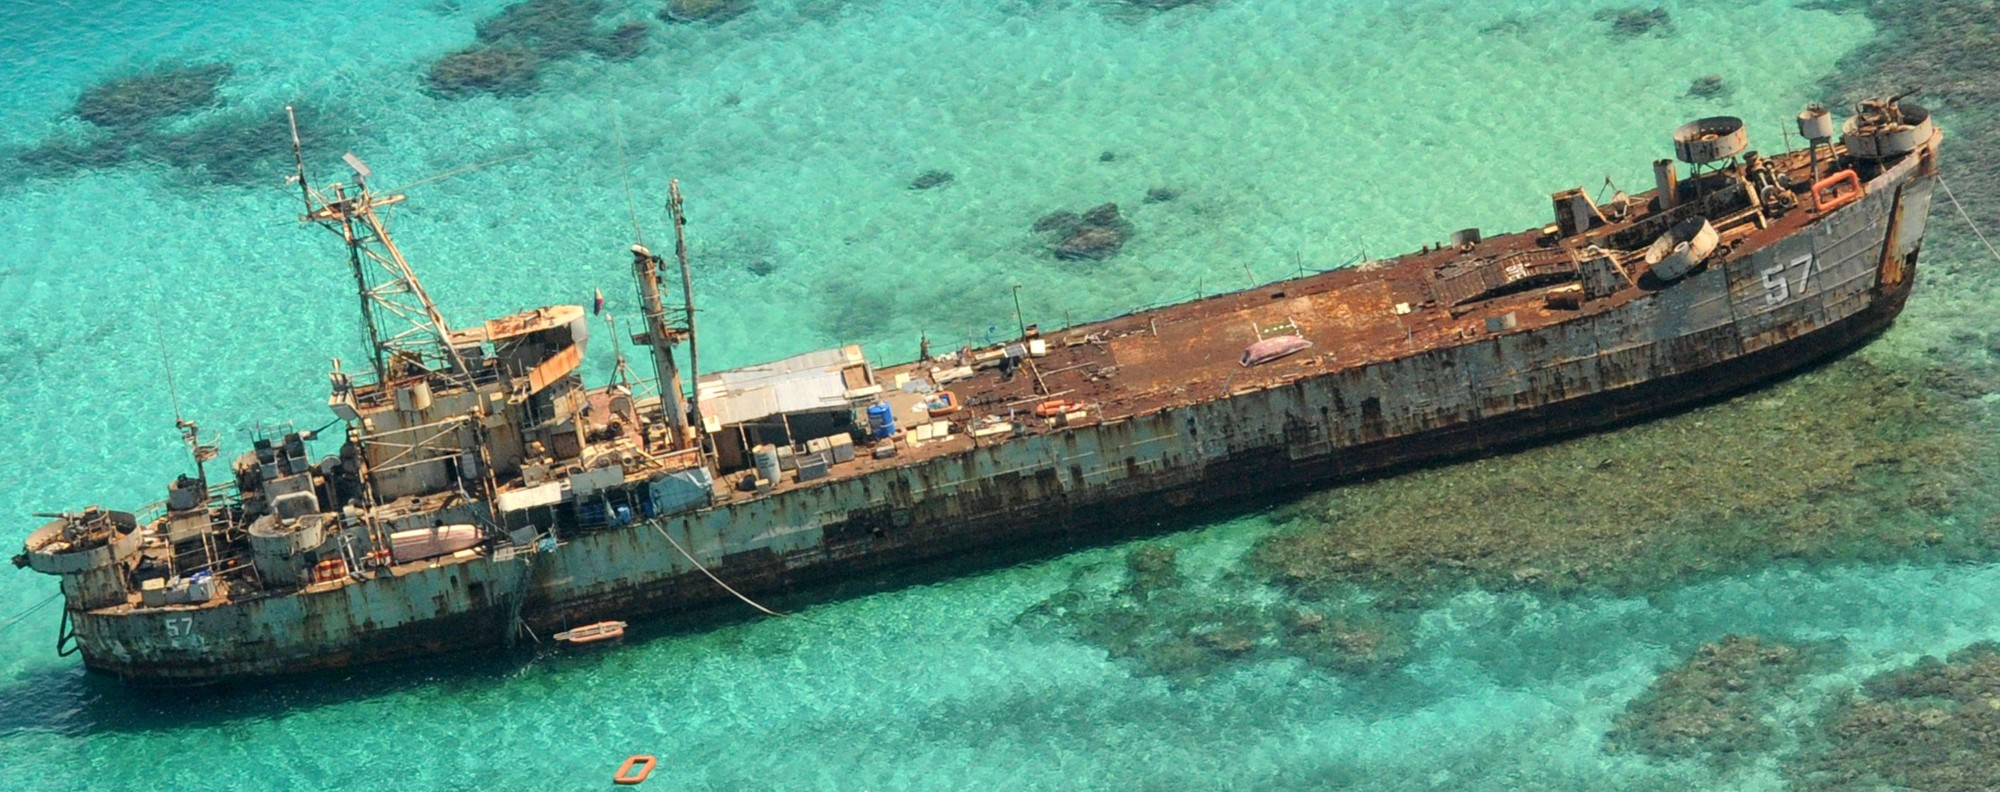 A grounded Philippines Navy vessel in the disputed South China Sea. Photo: AFP